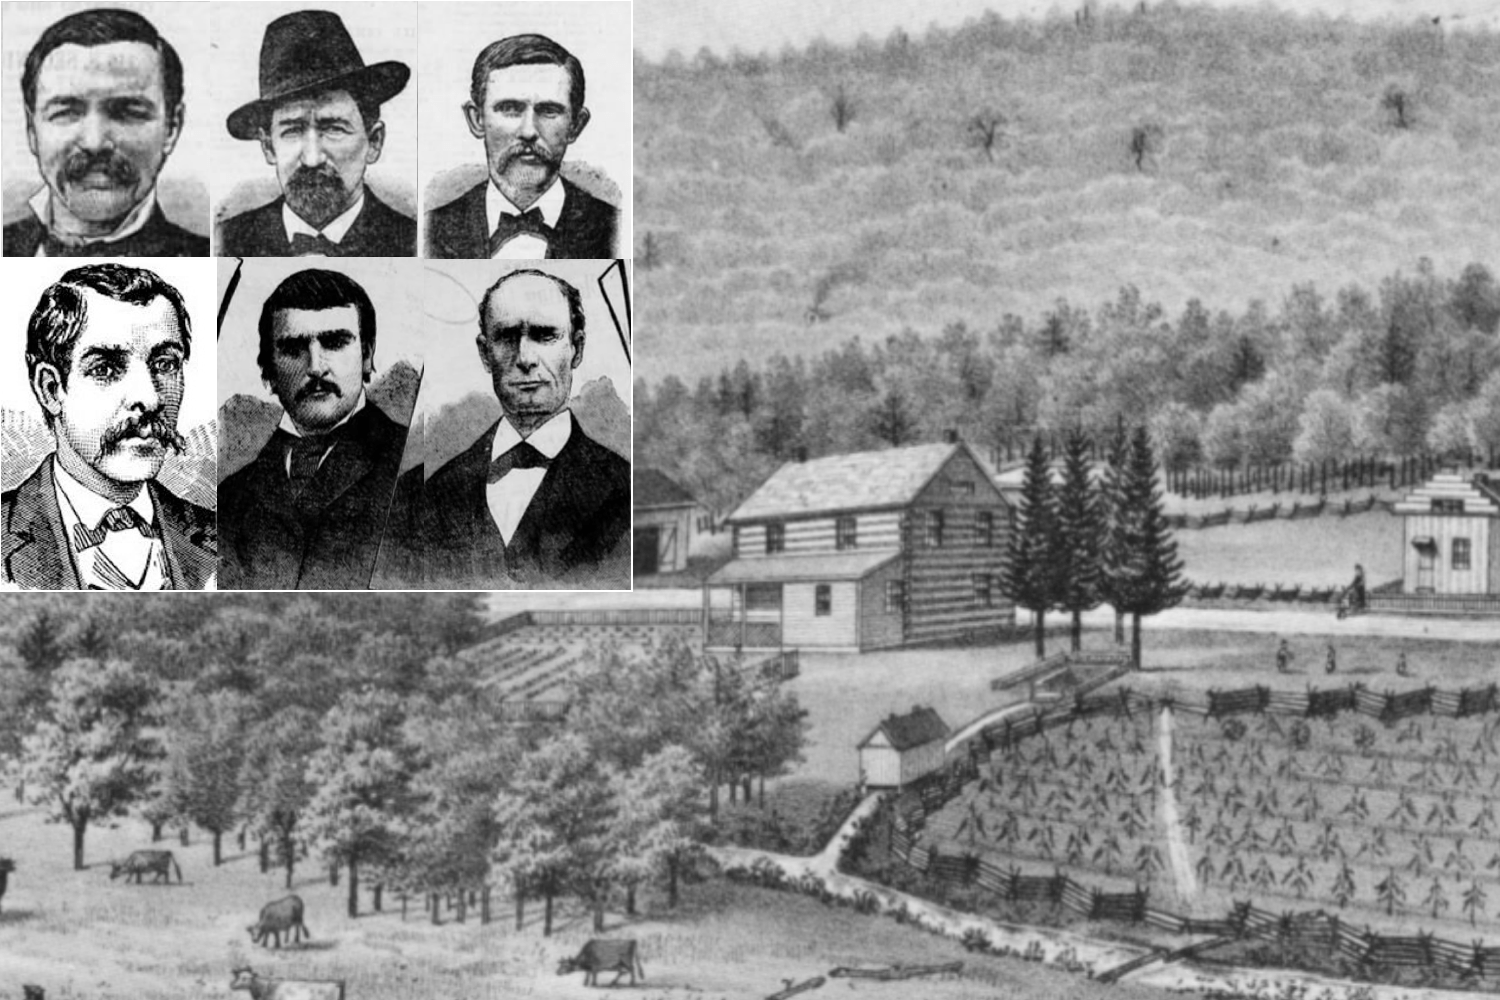 The true crime story that made Lebanon famous around the world: The Blue-Eyed Six, plotters of a murder 140 years ago